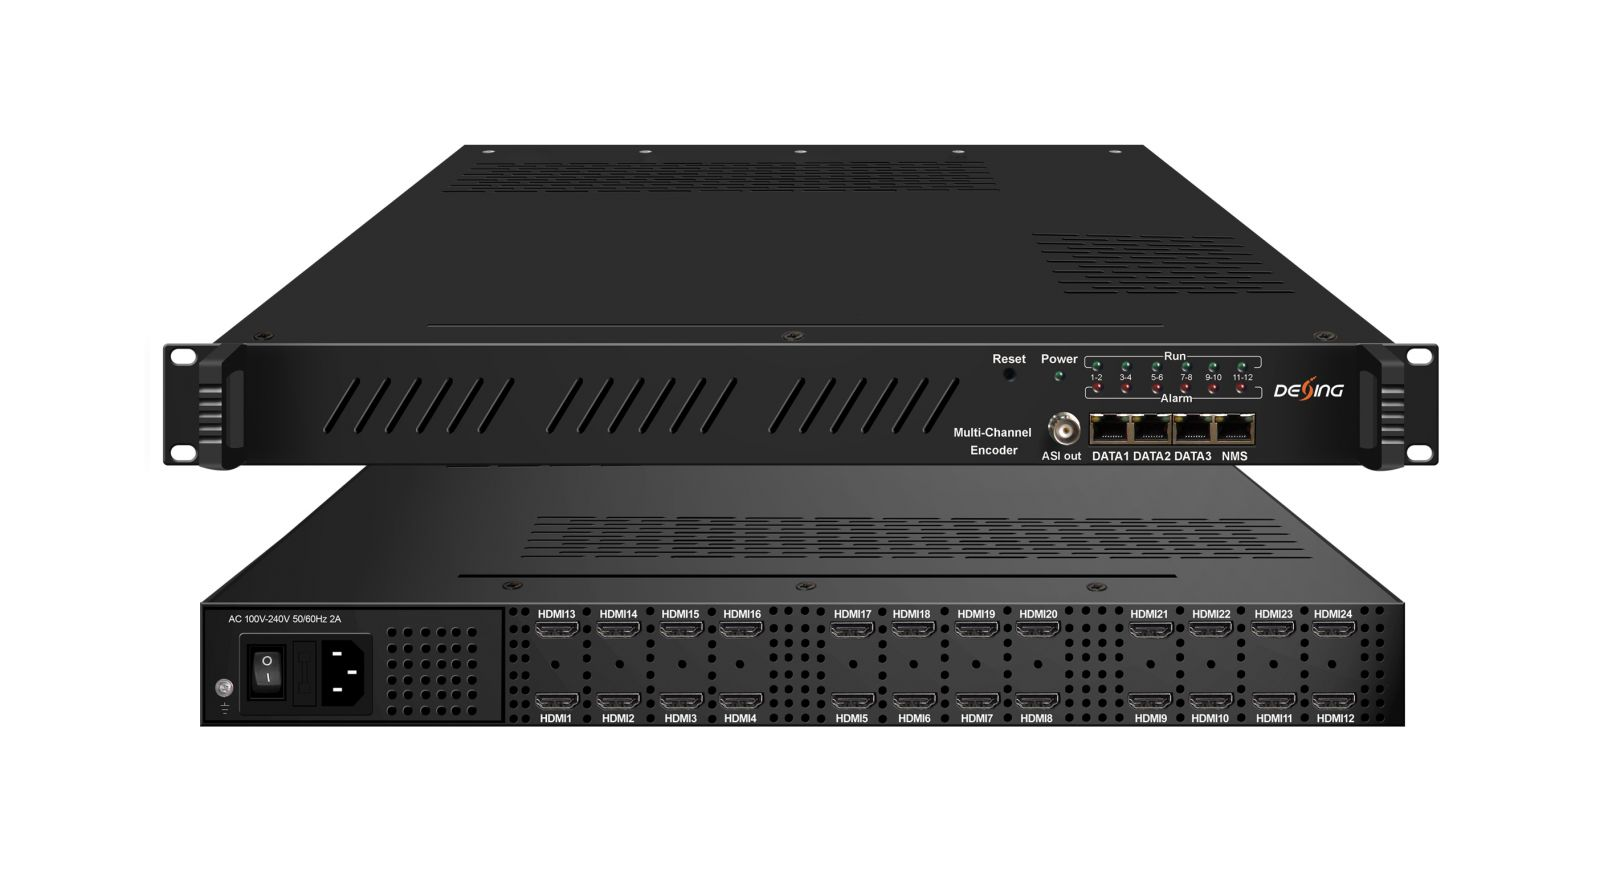 NDS3544KF Multi-Channel Encoder